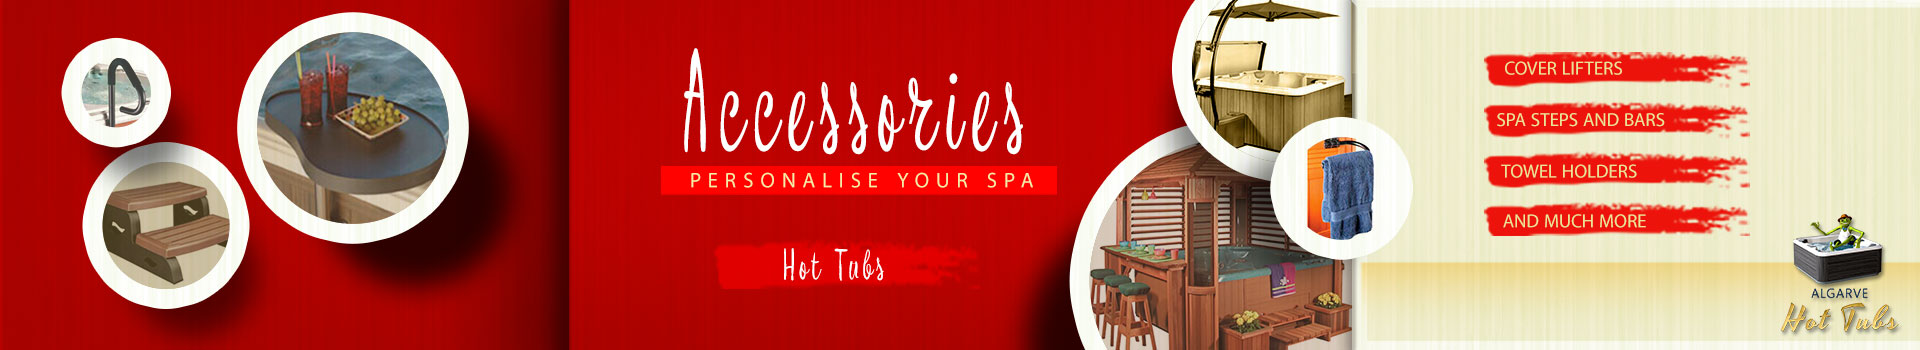 Hottubs - Accessories - Wellness Dreams Algarve